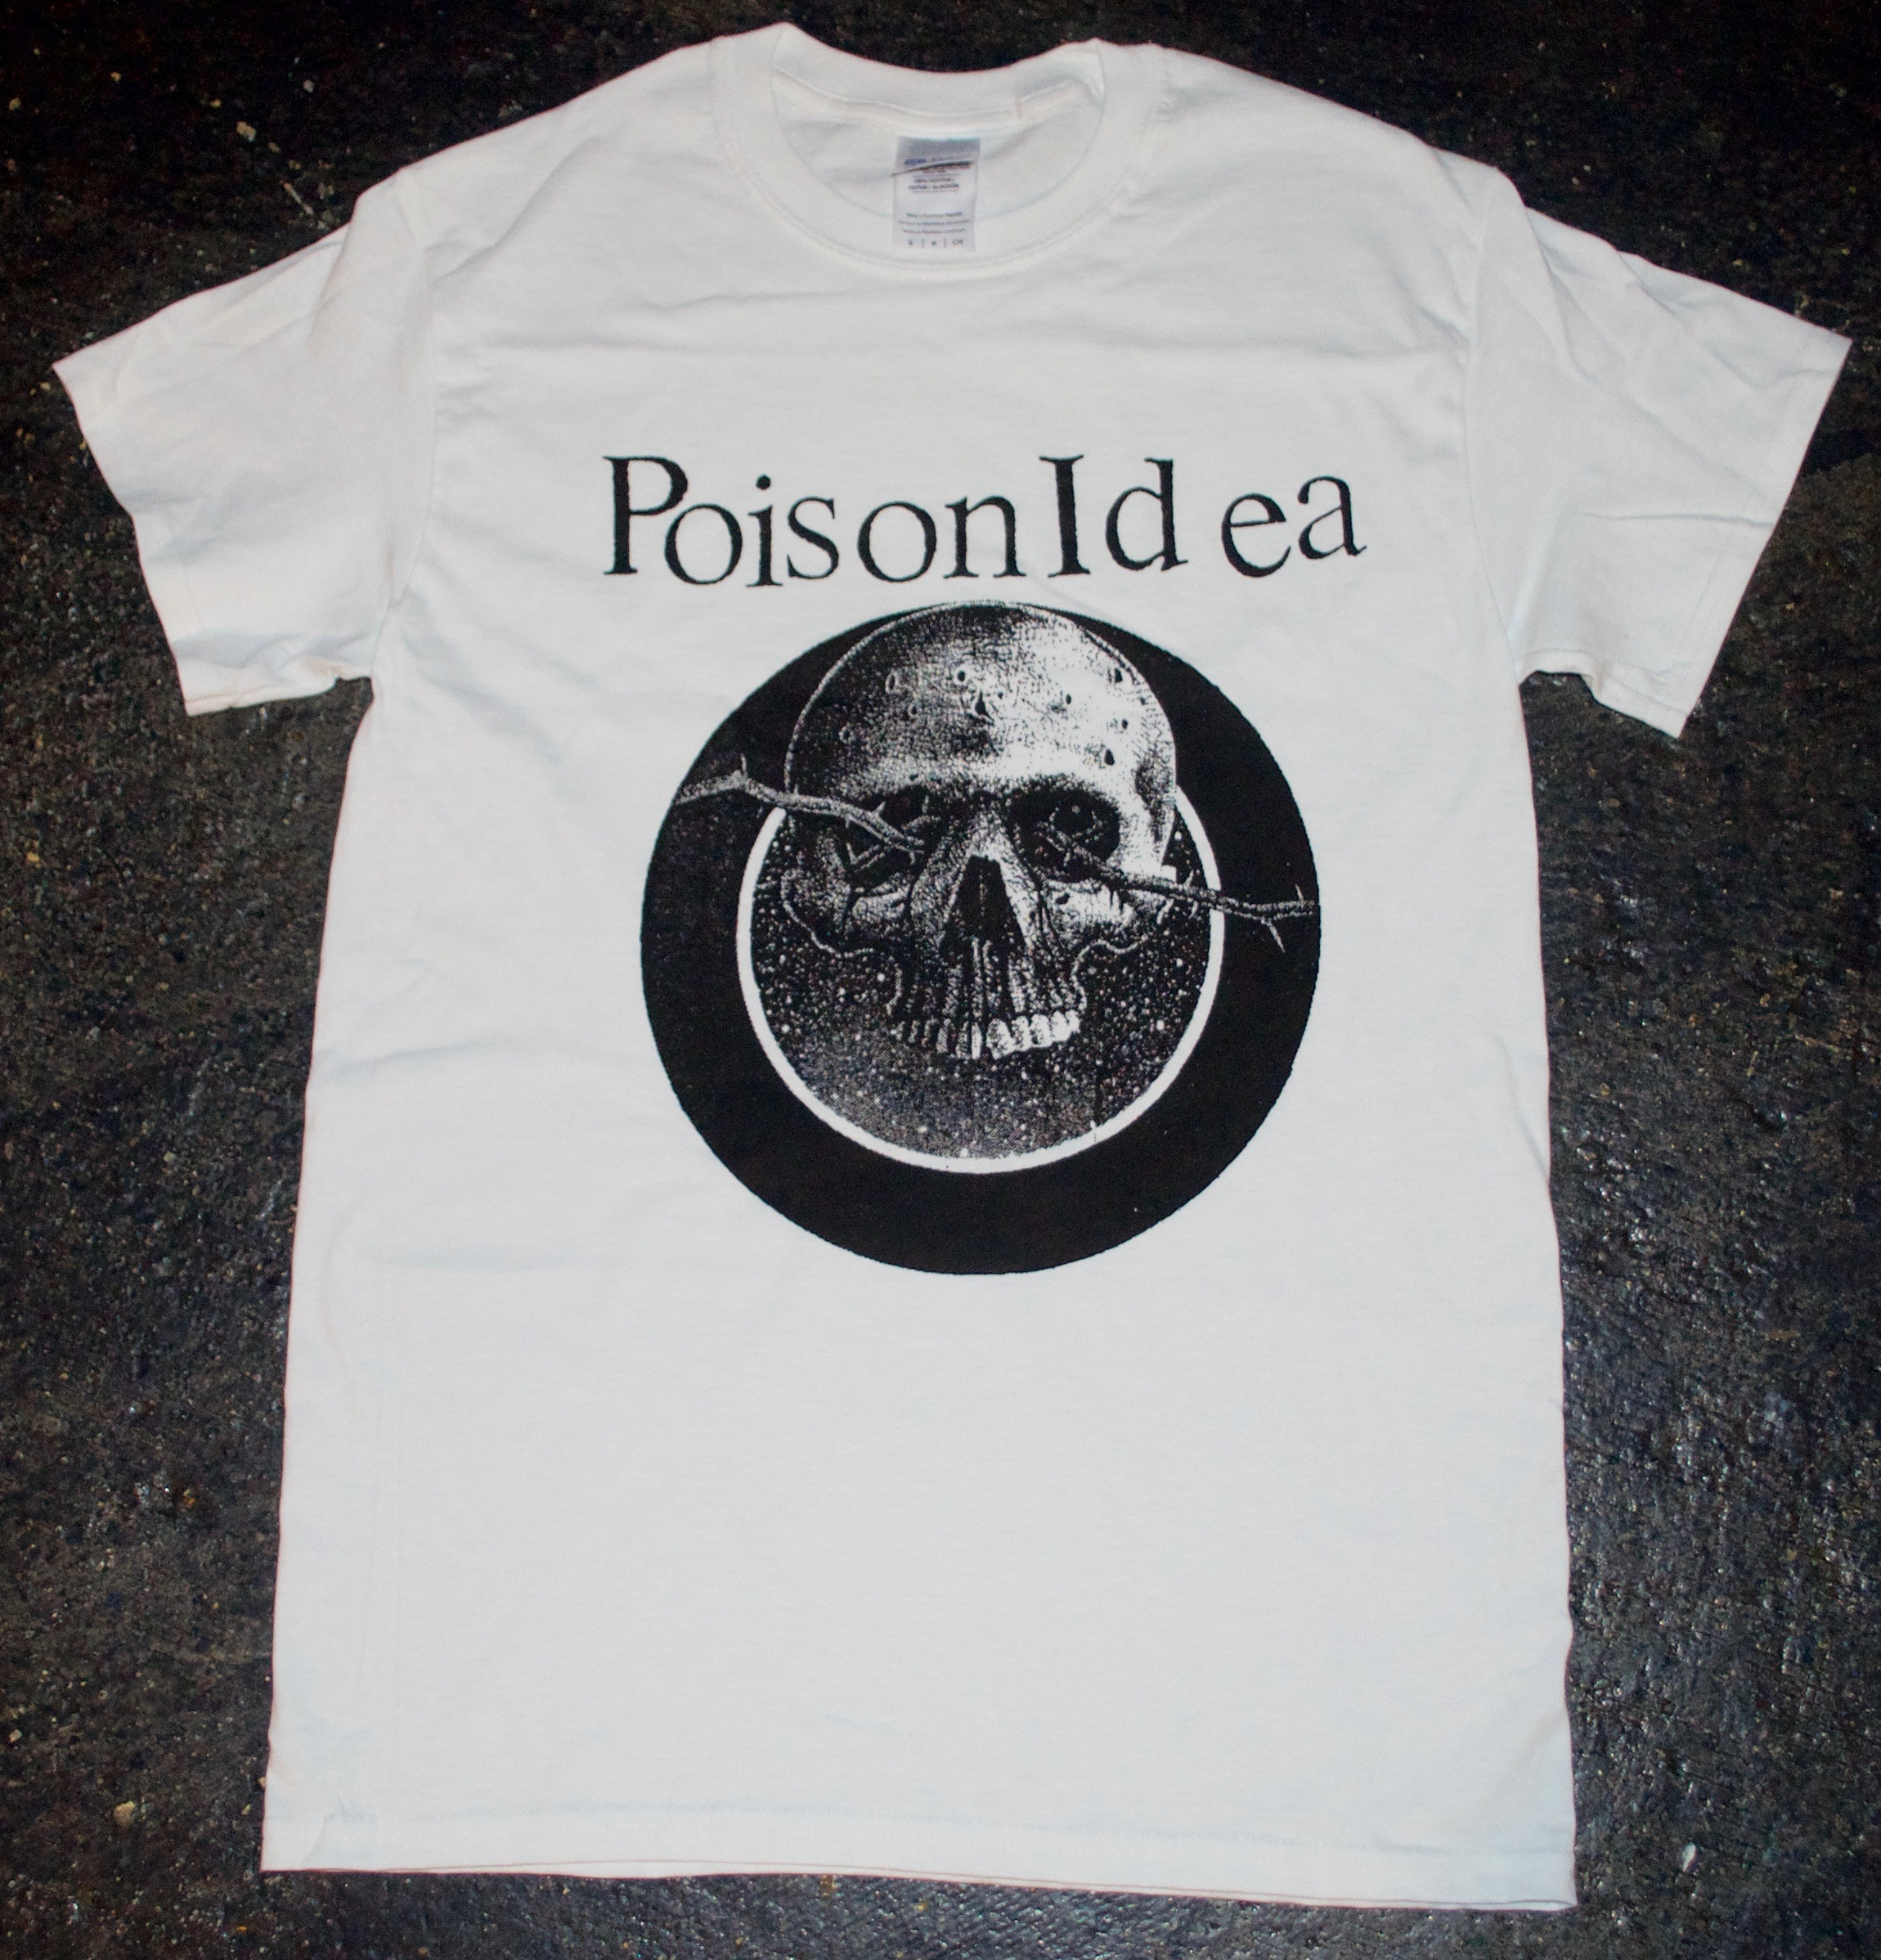 28c8b0556 Poison Idea - 'Pusmort' T-Shirt · Side Two · Online Store Powered by ...